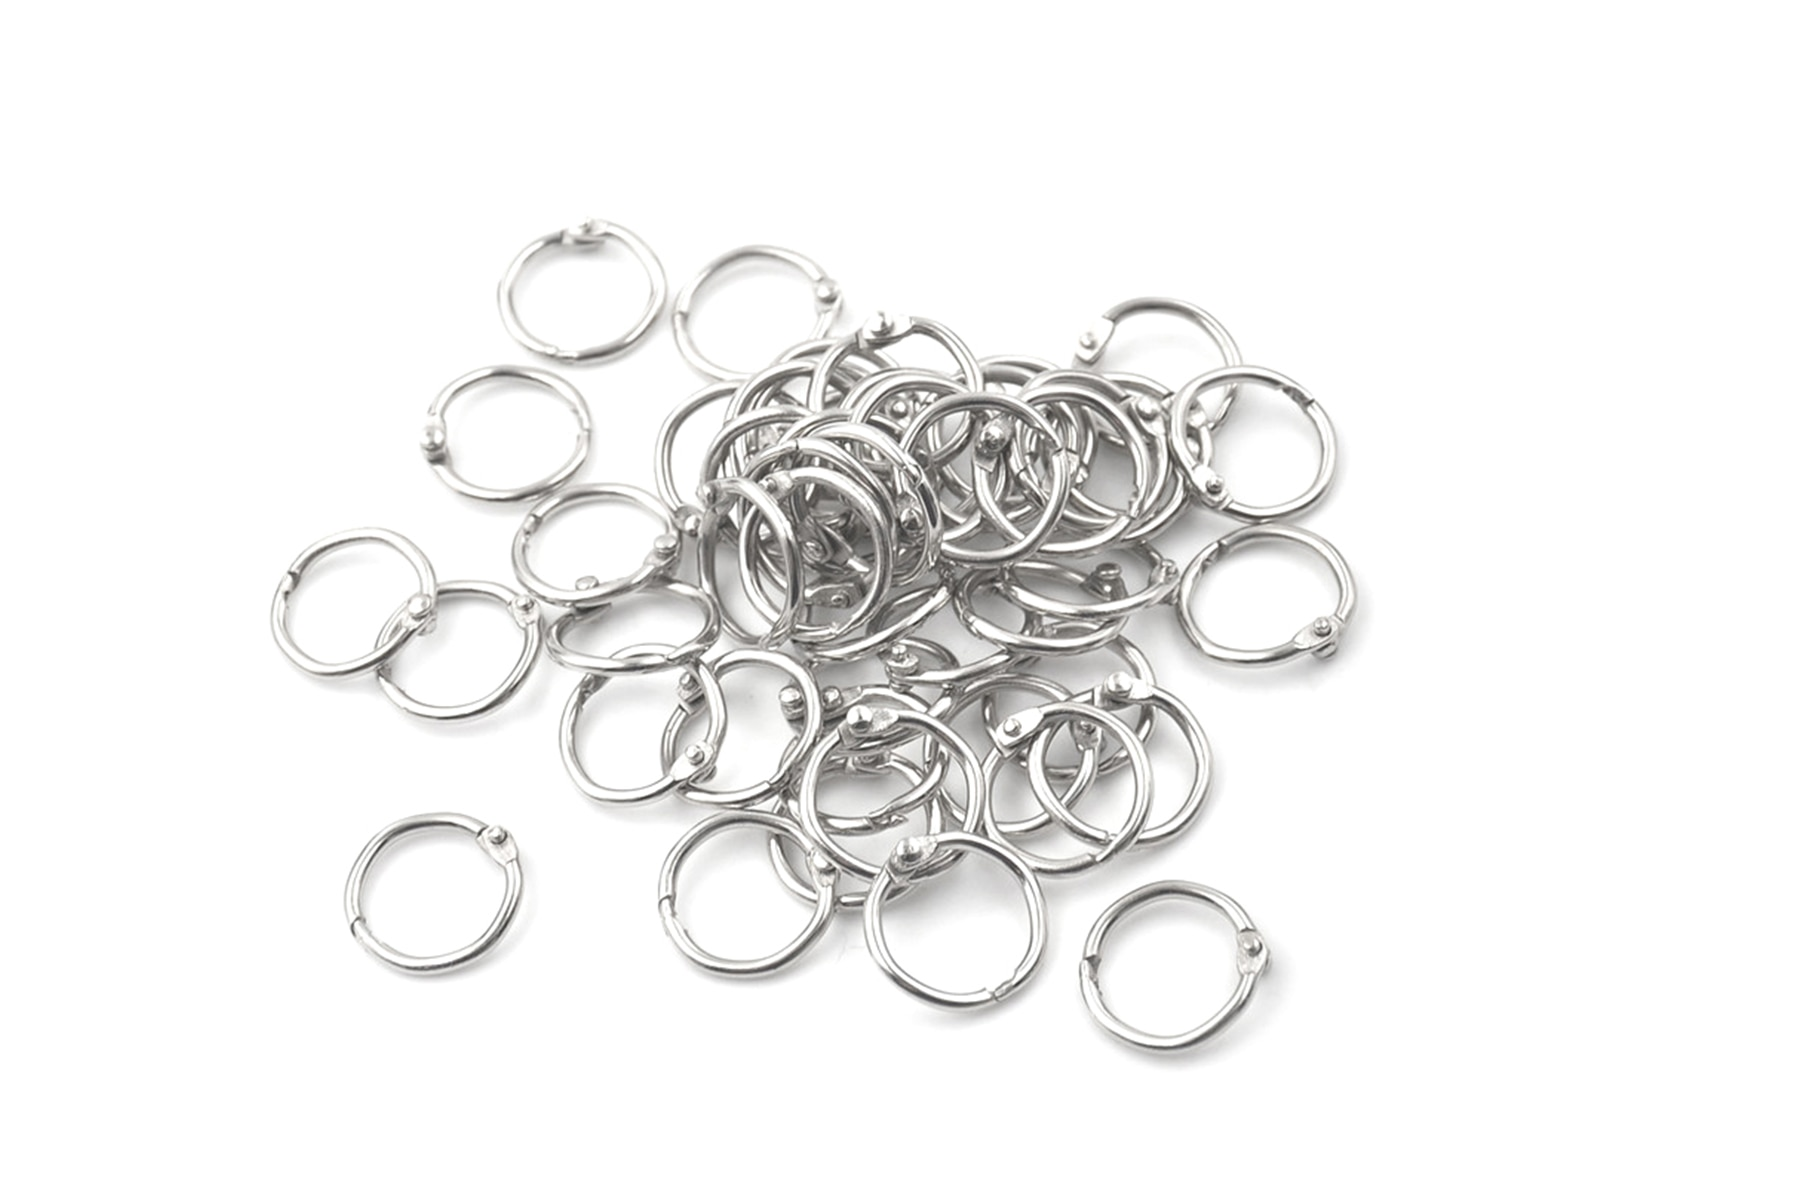 [해외]50Pcs Metal Staple Loose Leaf Circlip Ring Outer Diameter 20mm Keychain Book Binder Ring/50Pcs Metal Staple Loose Leaf Circlip Ring Outer Diameter